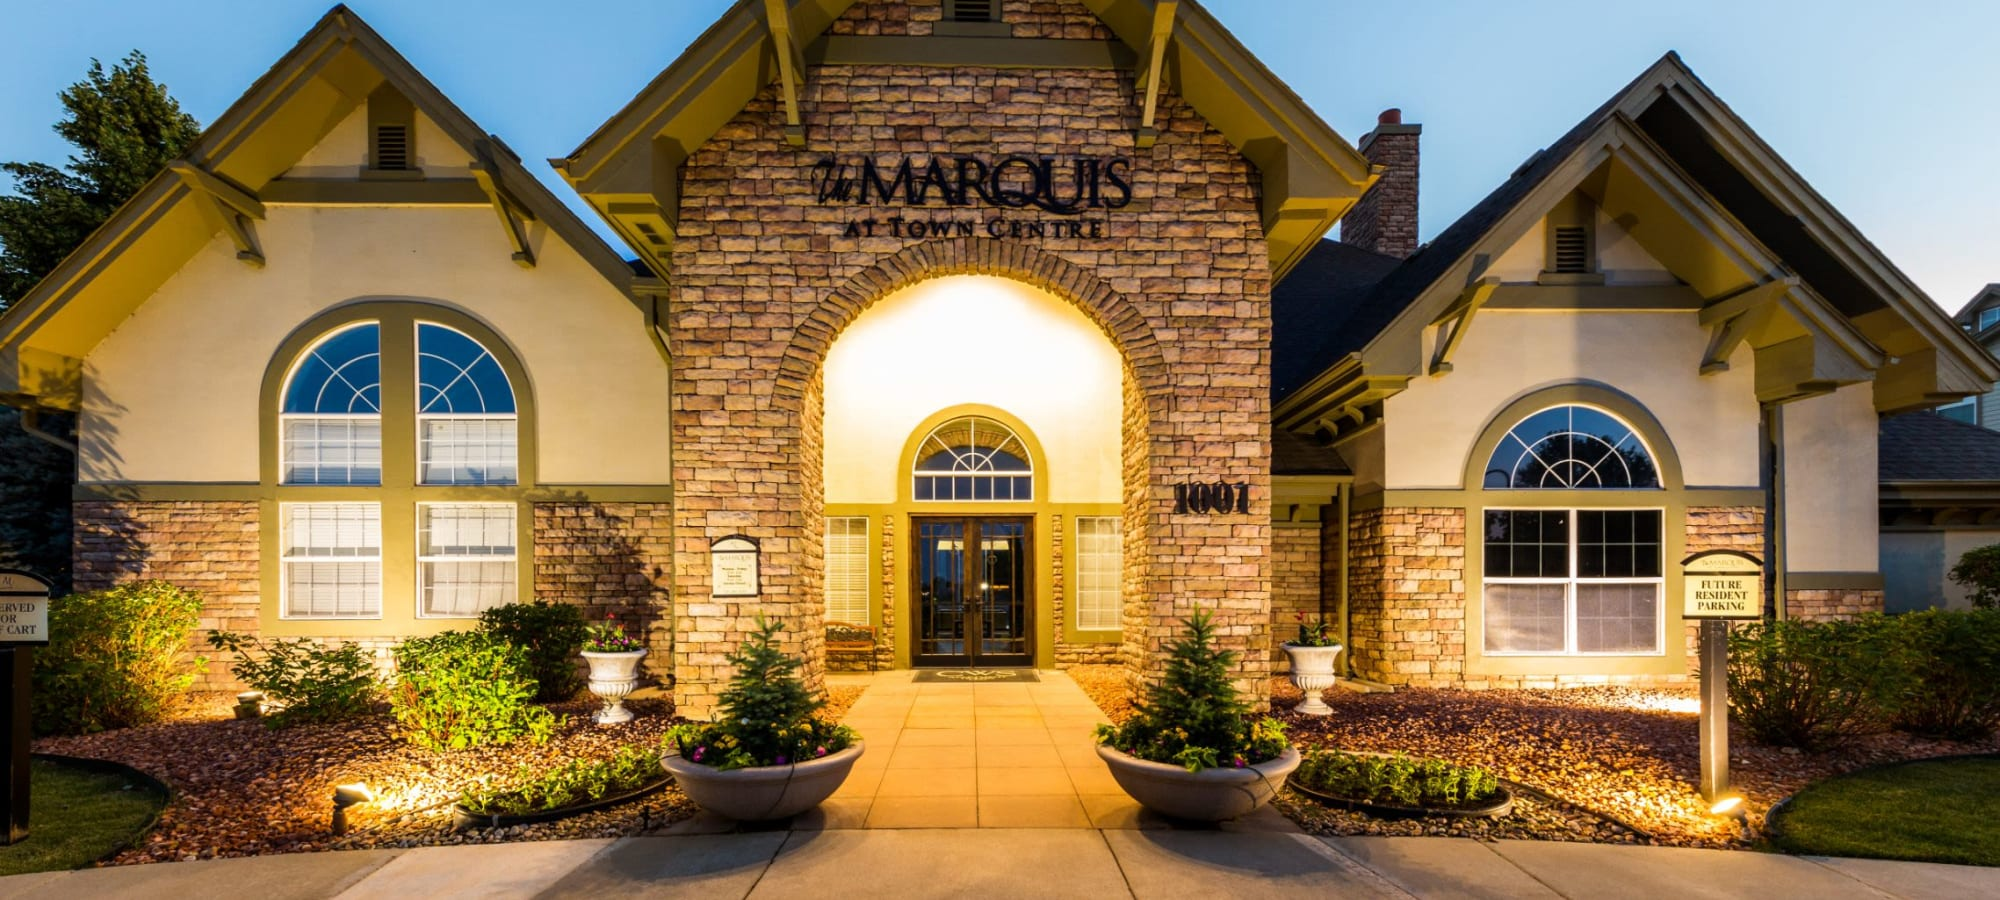 Apartments at Marquis at Town Centre in Broomfield, Colorado